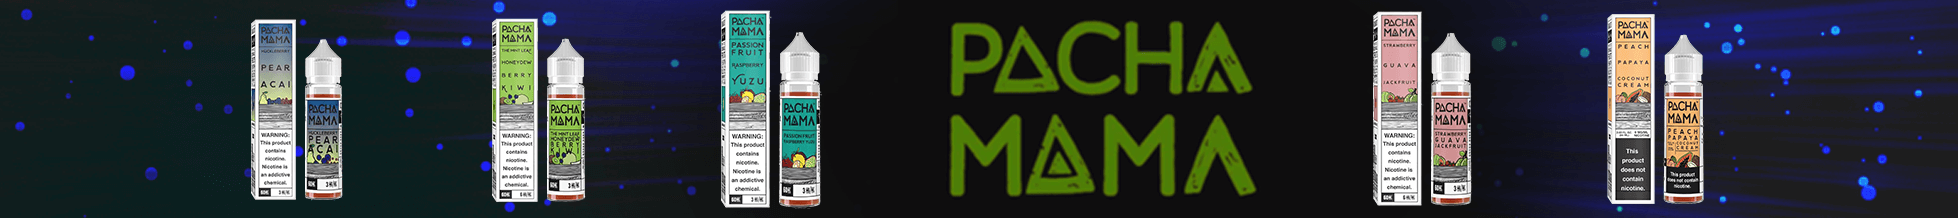 pacha-mama-category-banner.png